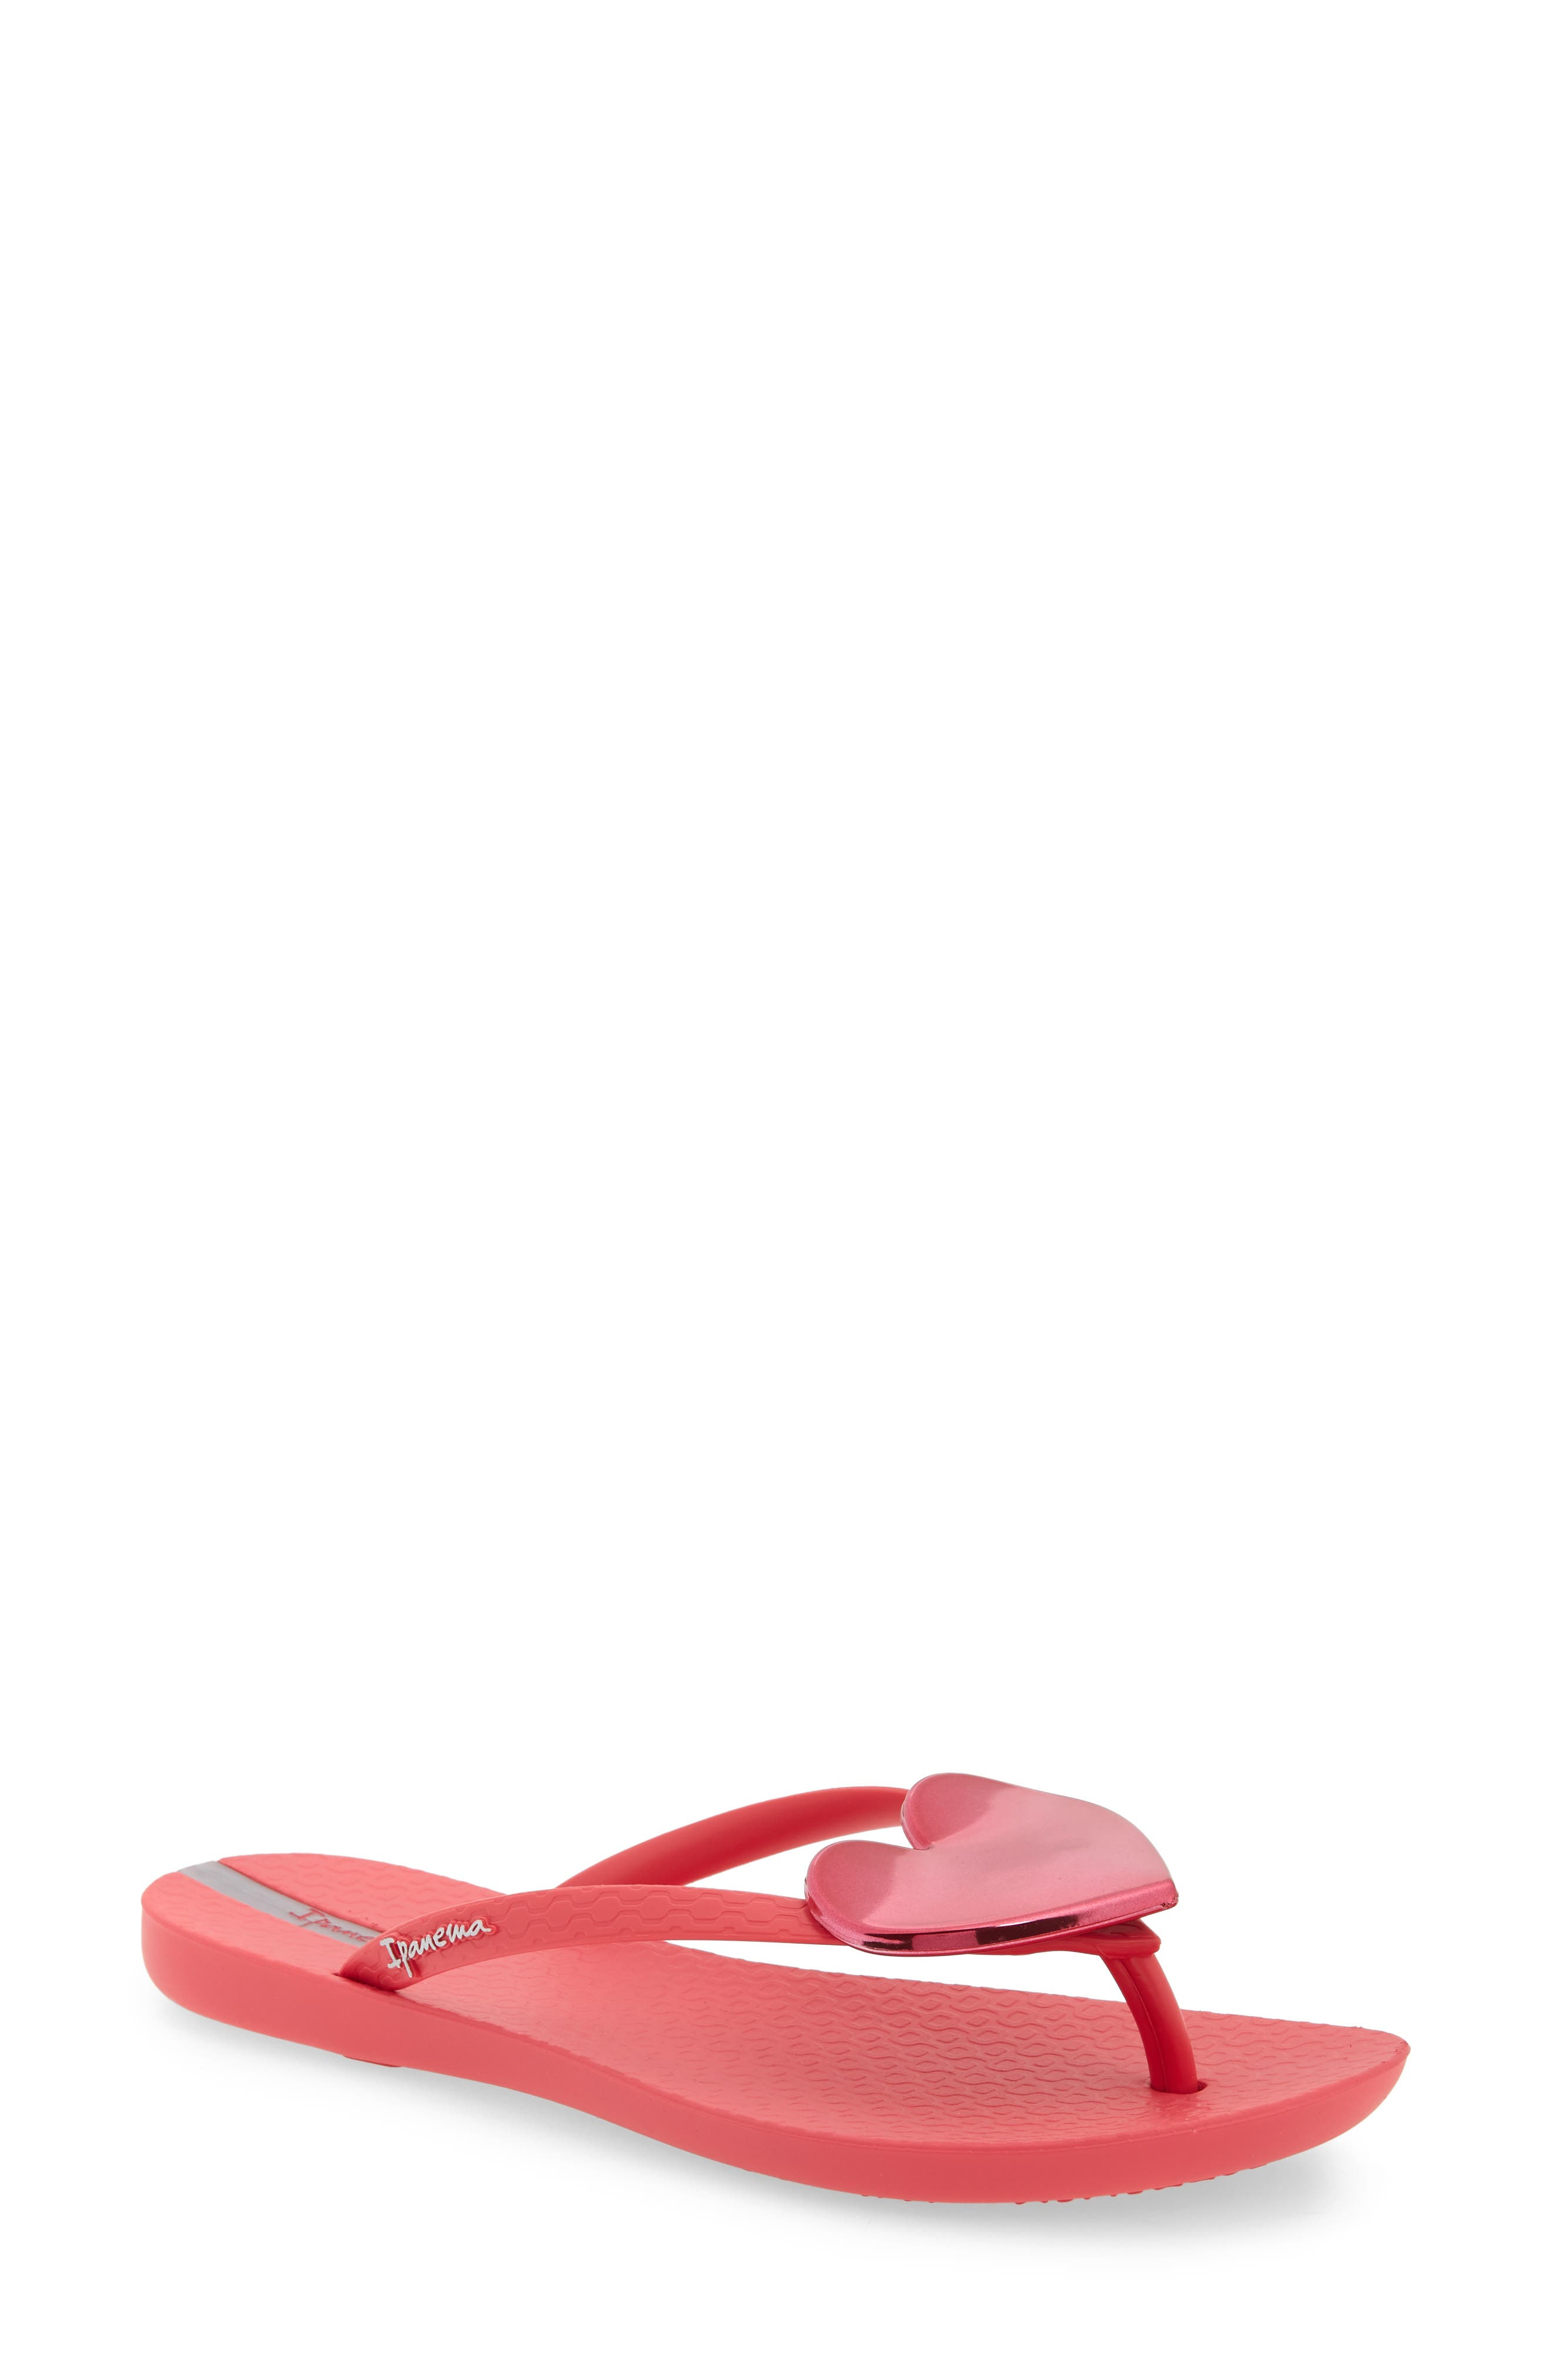 IPANEMA Wave Heart Flip Flop, Main, color, PINK/ RED